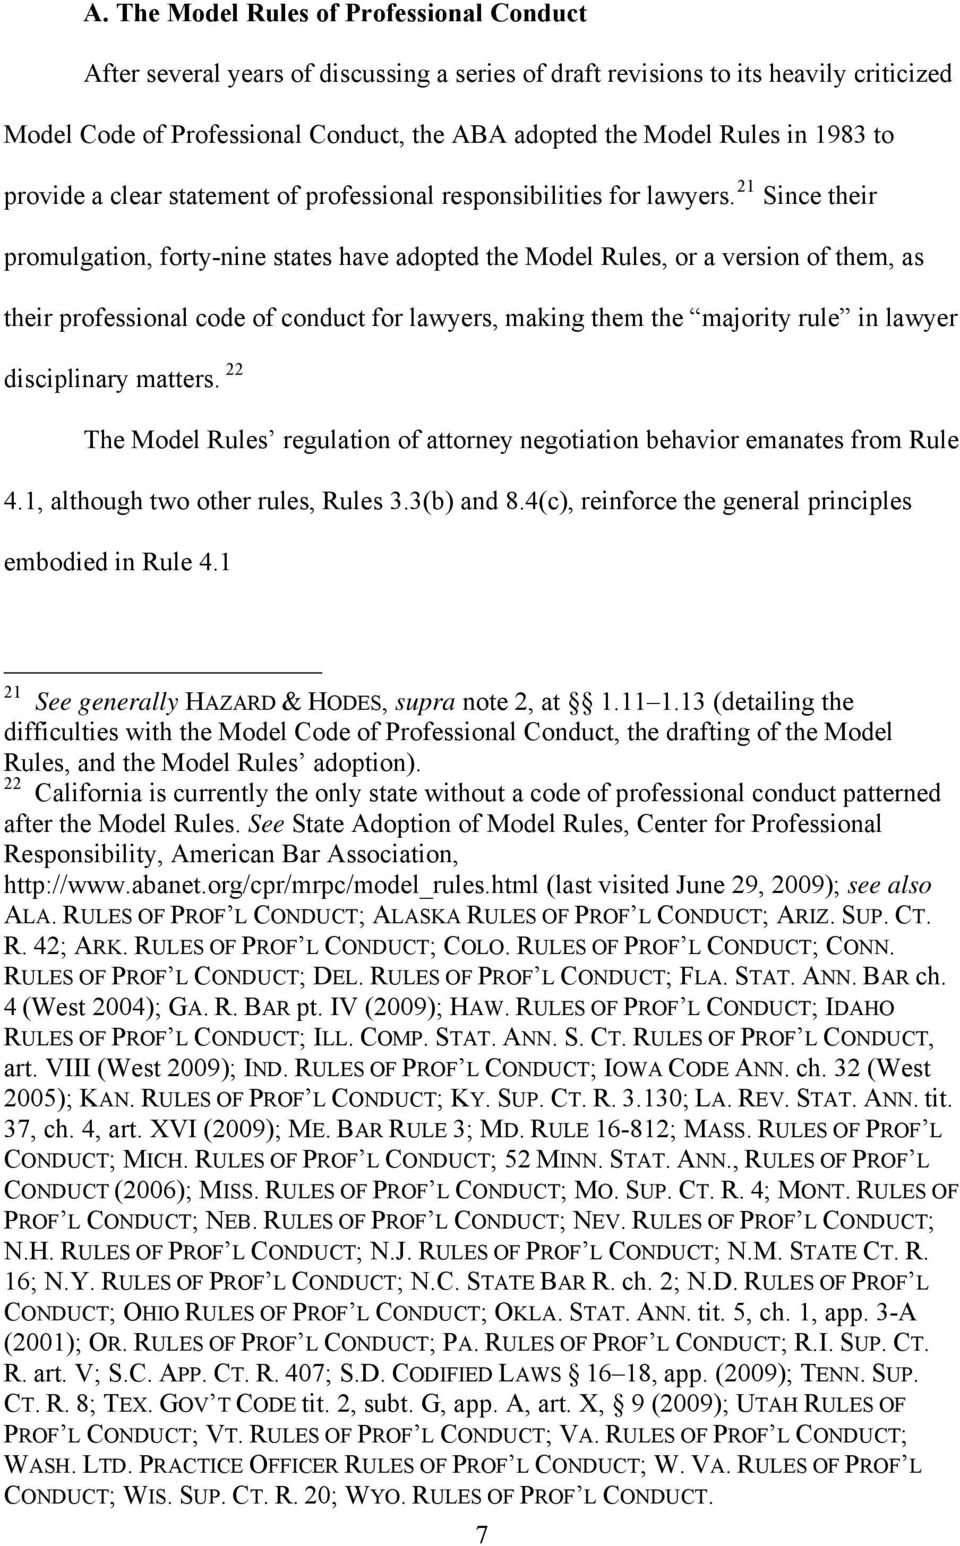 21 Since their promulgation, forty-nine states have adopted the Model Rules, or a version of them, as their professional code of conduct for lawyers, making them the majority rule in lawyer